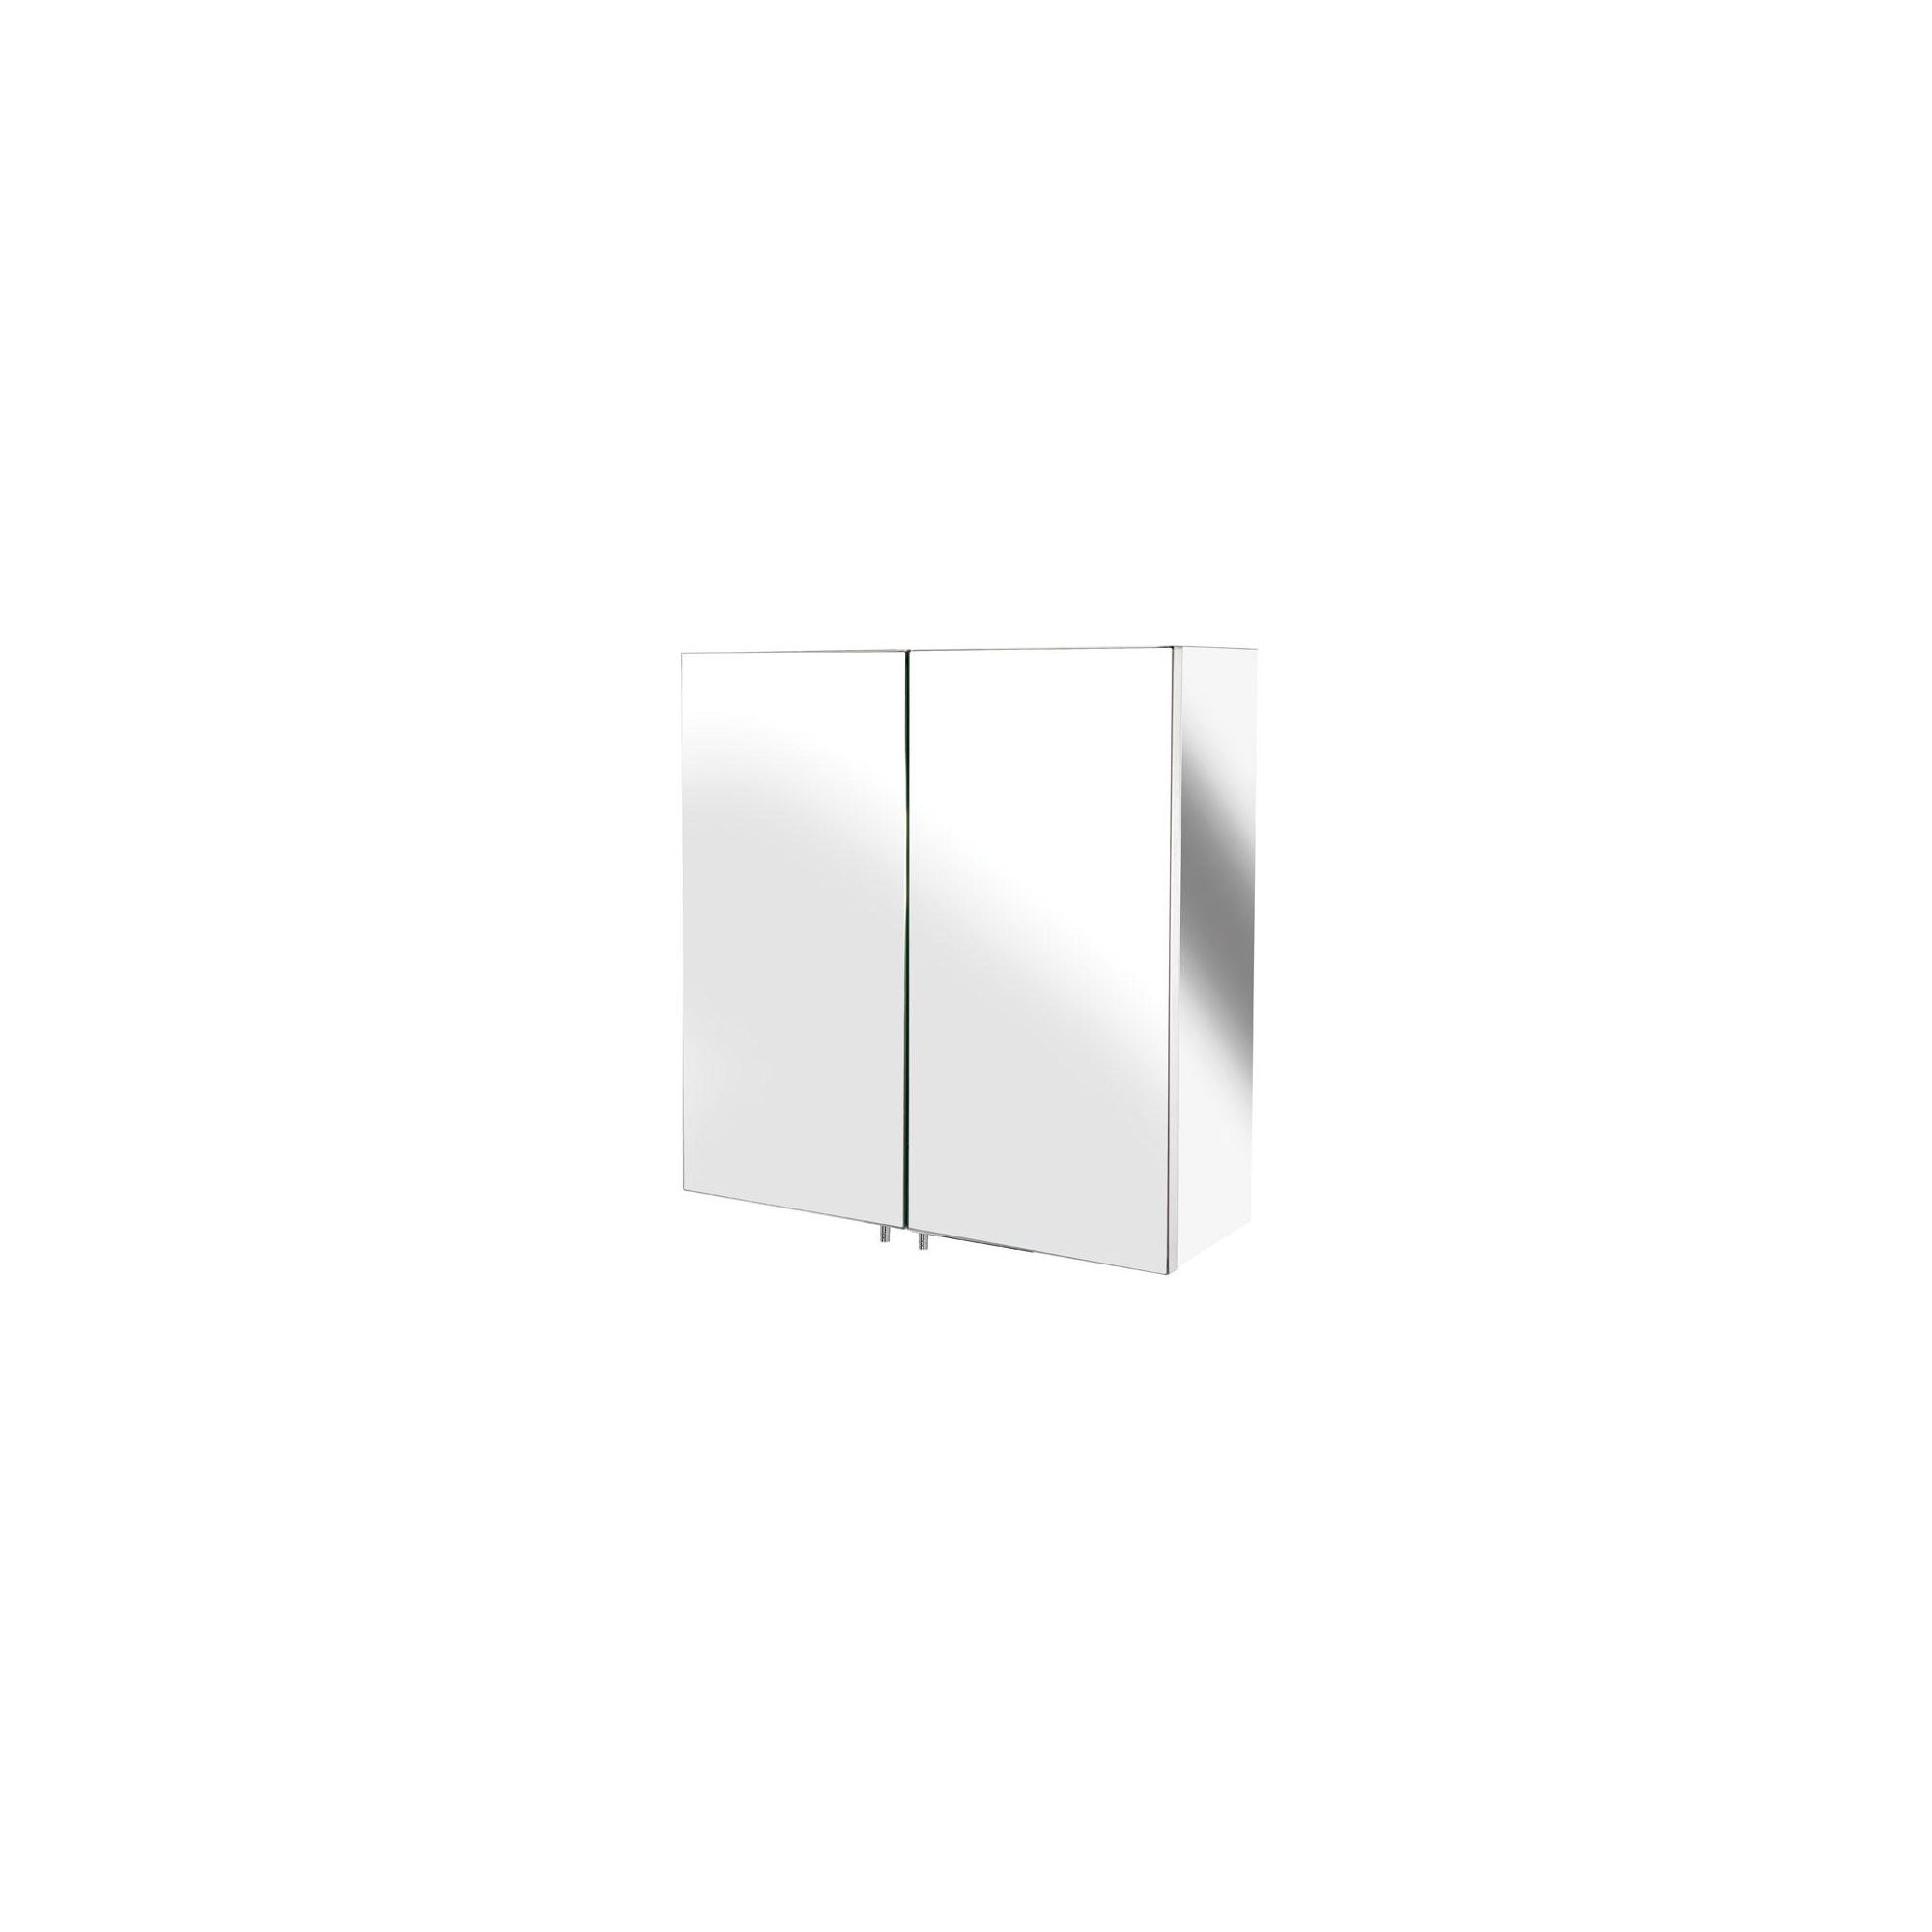 Croydex Avon Small Double Door Stainless Steel Bathroom Cabinet